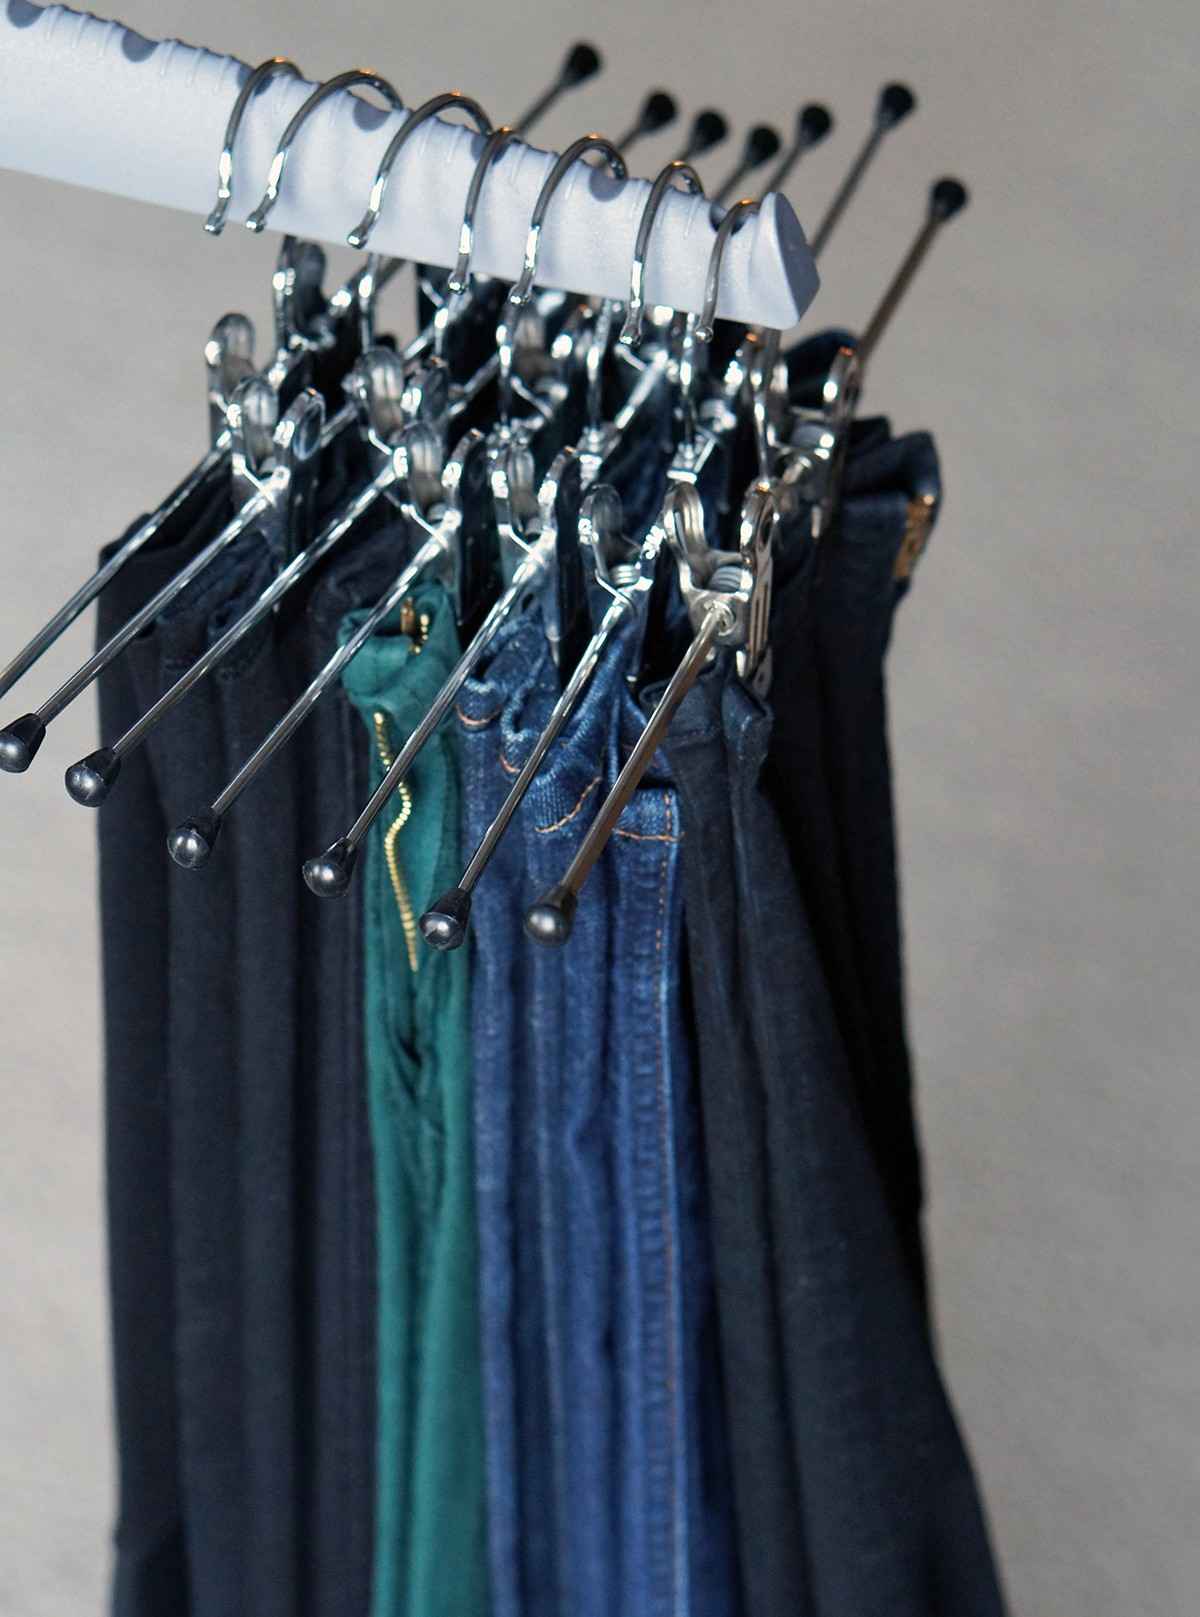 9 INEXPENSIVE WAYS TO ORGANIZE & CARE FOR YOUR CLOTHES